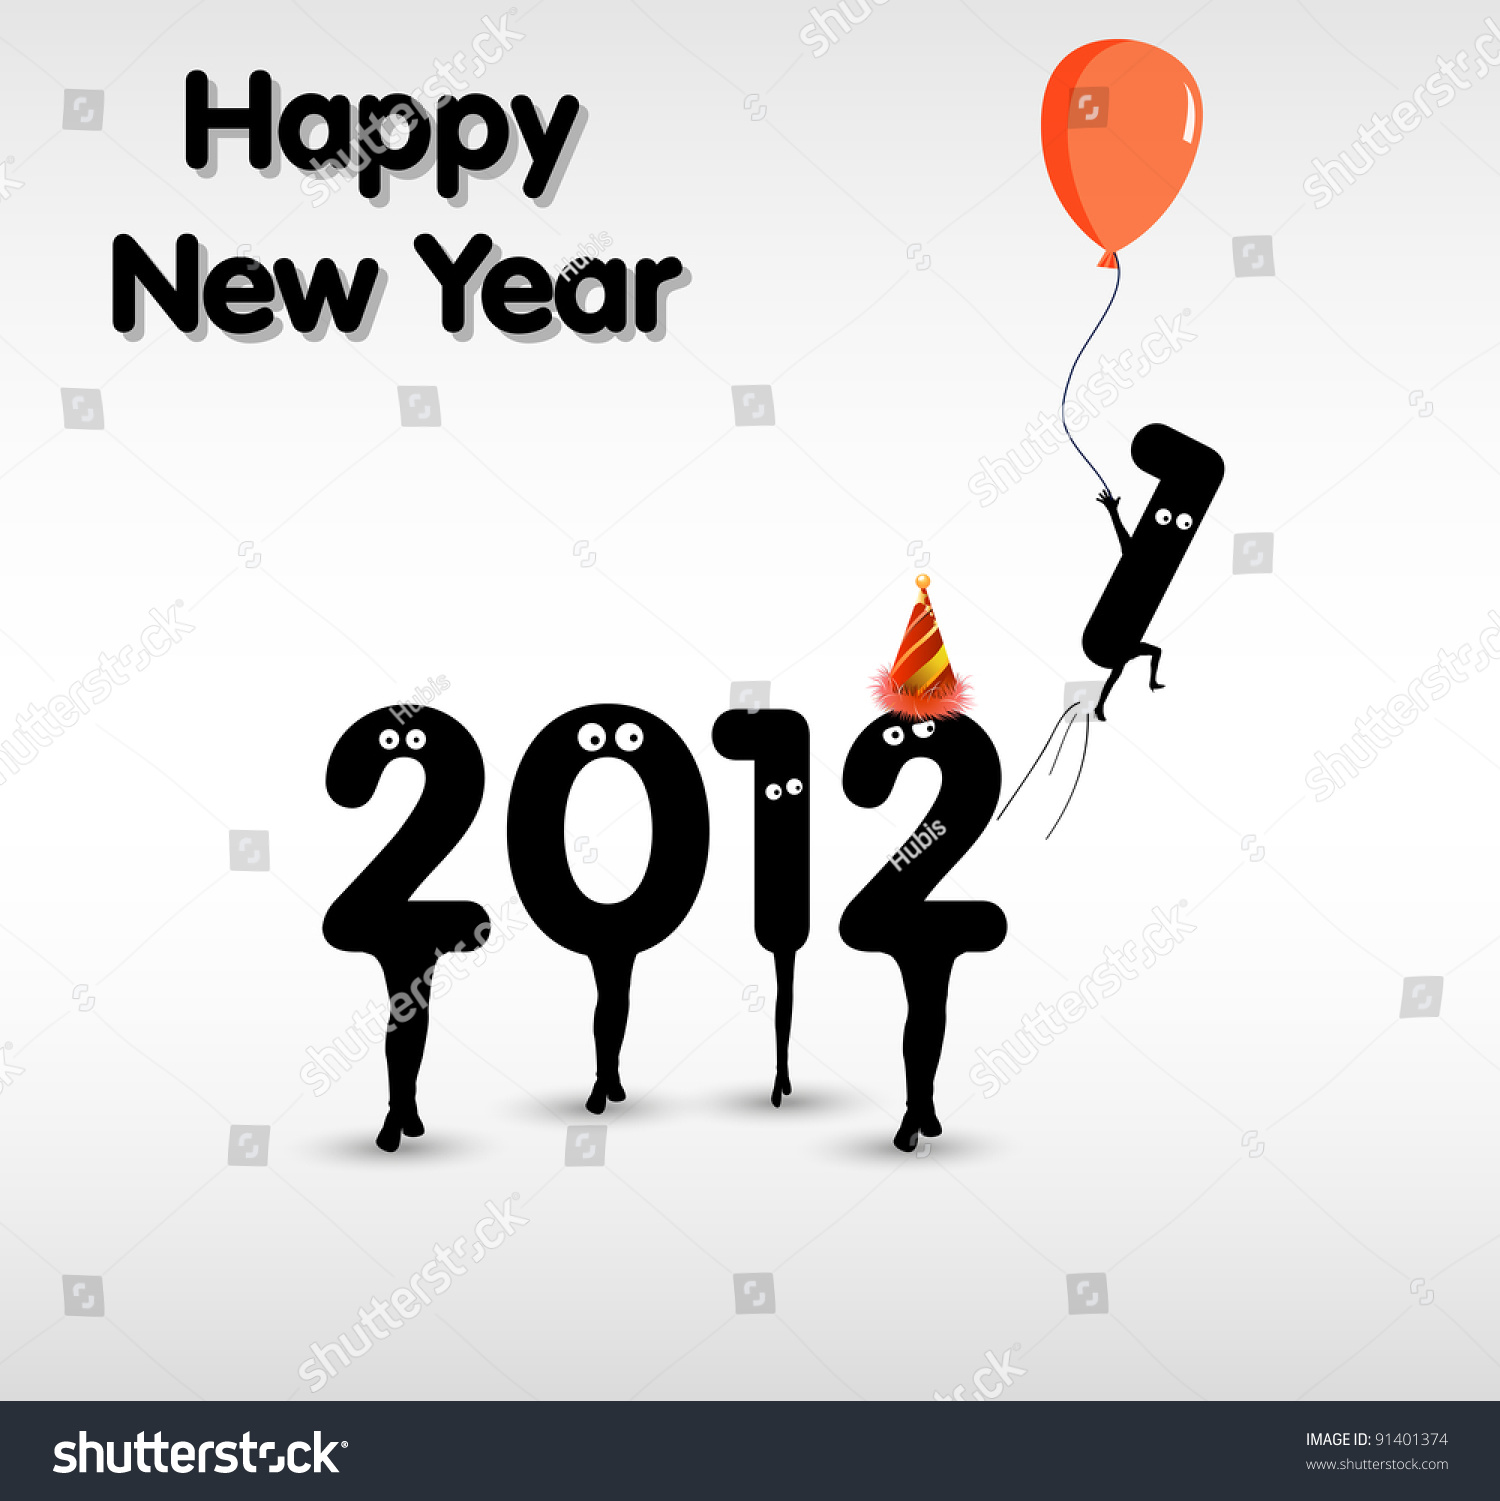 Funny New Year Card Concept Stock Vector (Royalty Free) 91401374 ...